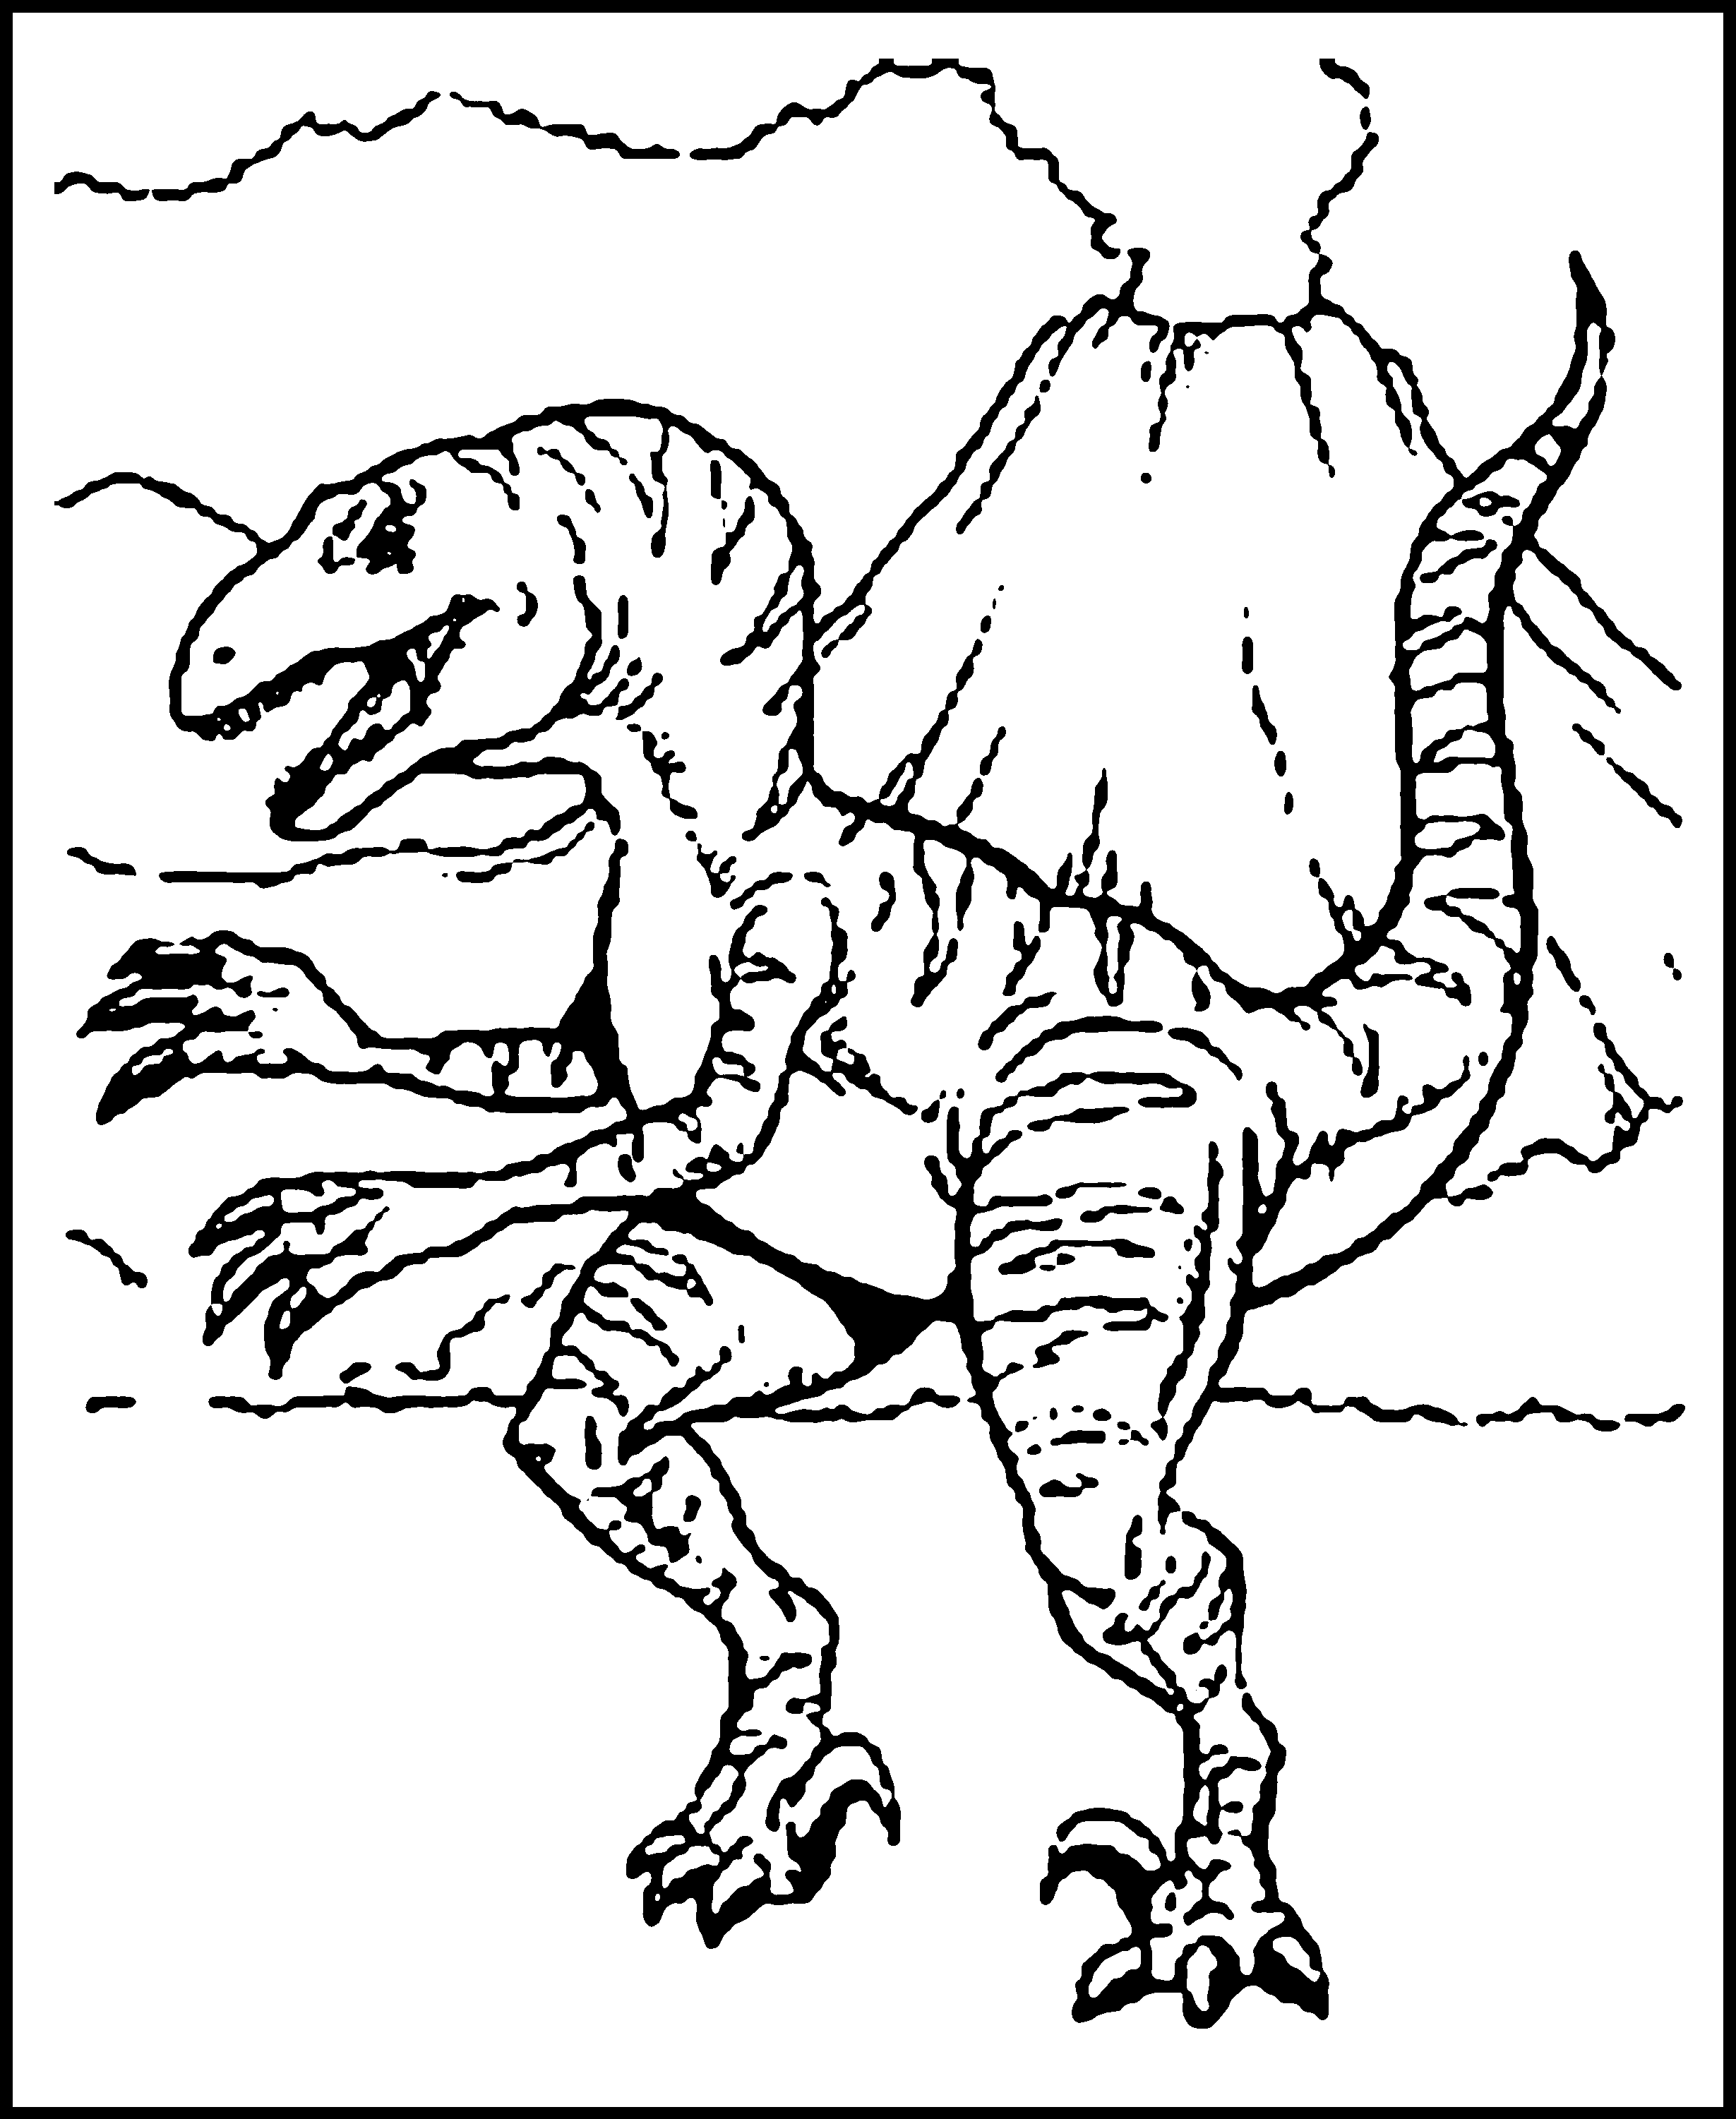 pictures of dinosaurs to print 20 free printable dinosaurs coloring pages to dinosaurs print pictures of